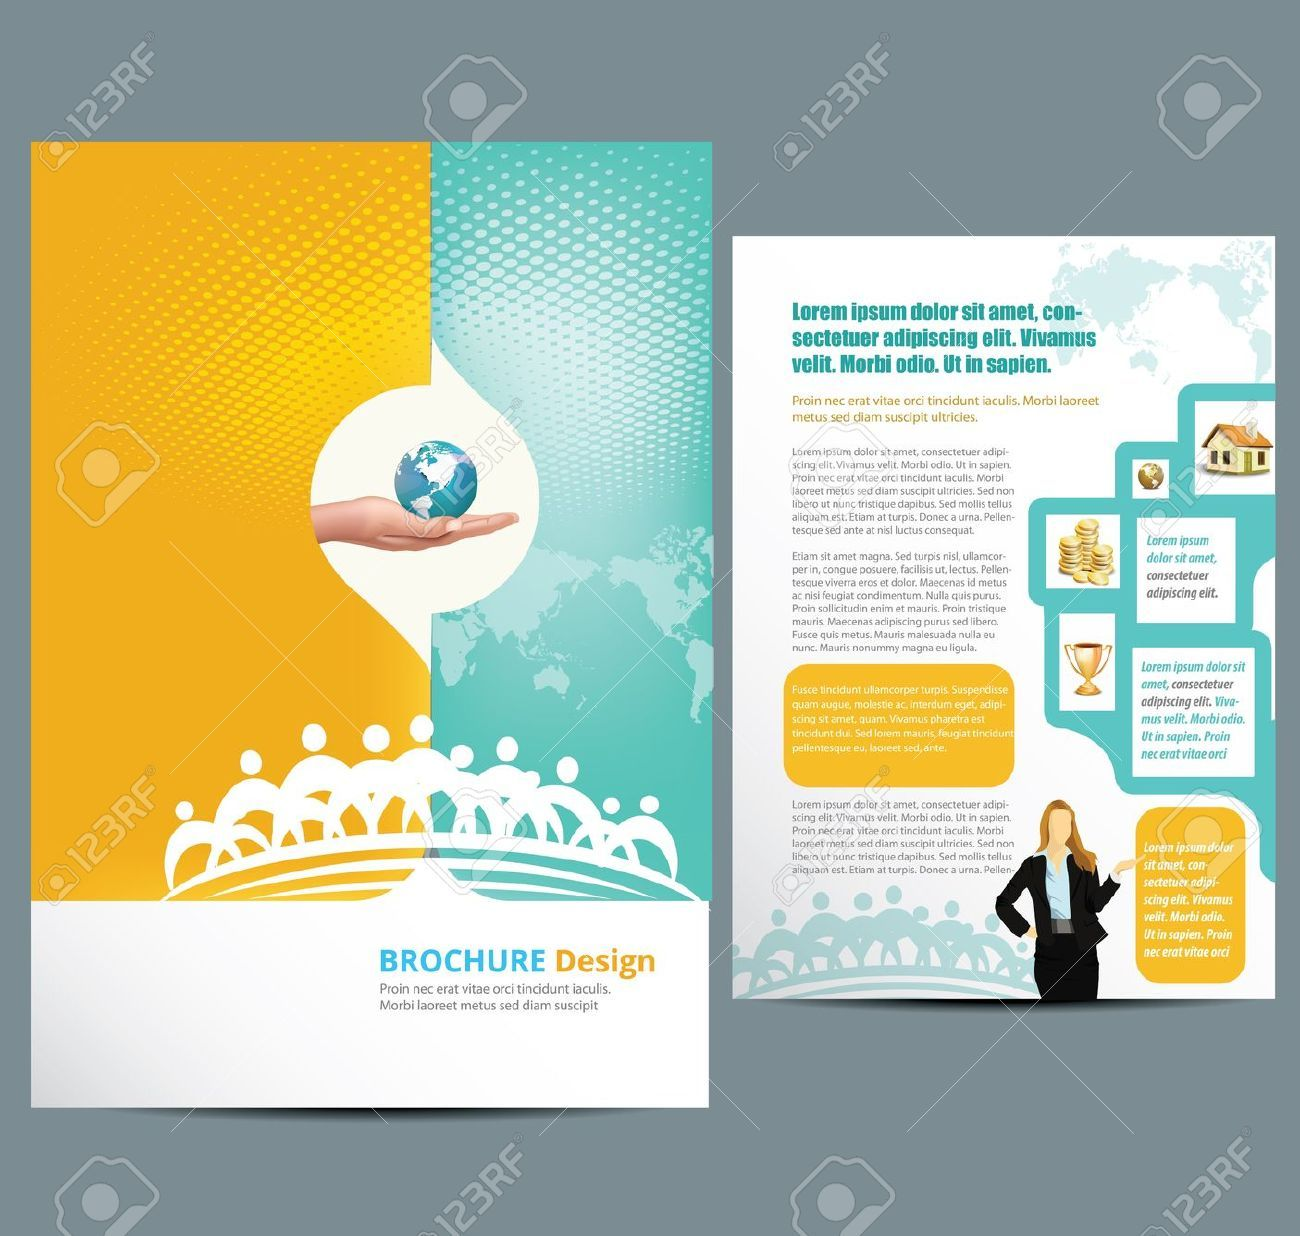 Brochure Design Template. Geometric shapes, Abstract Modern ...